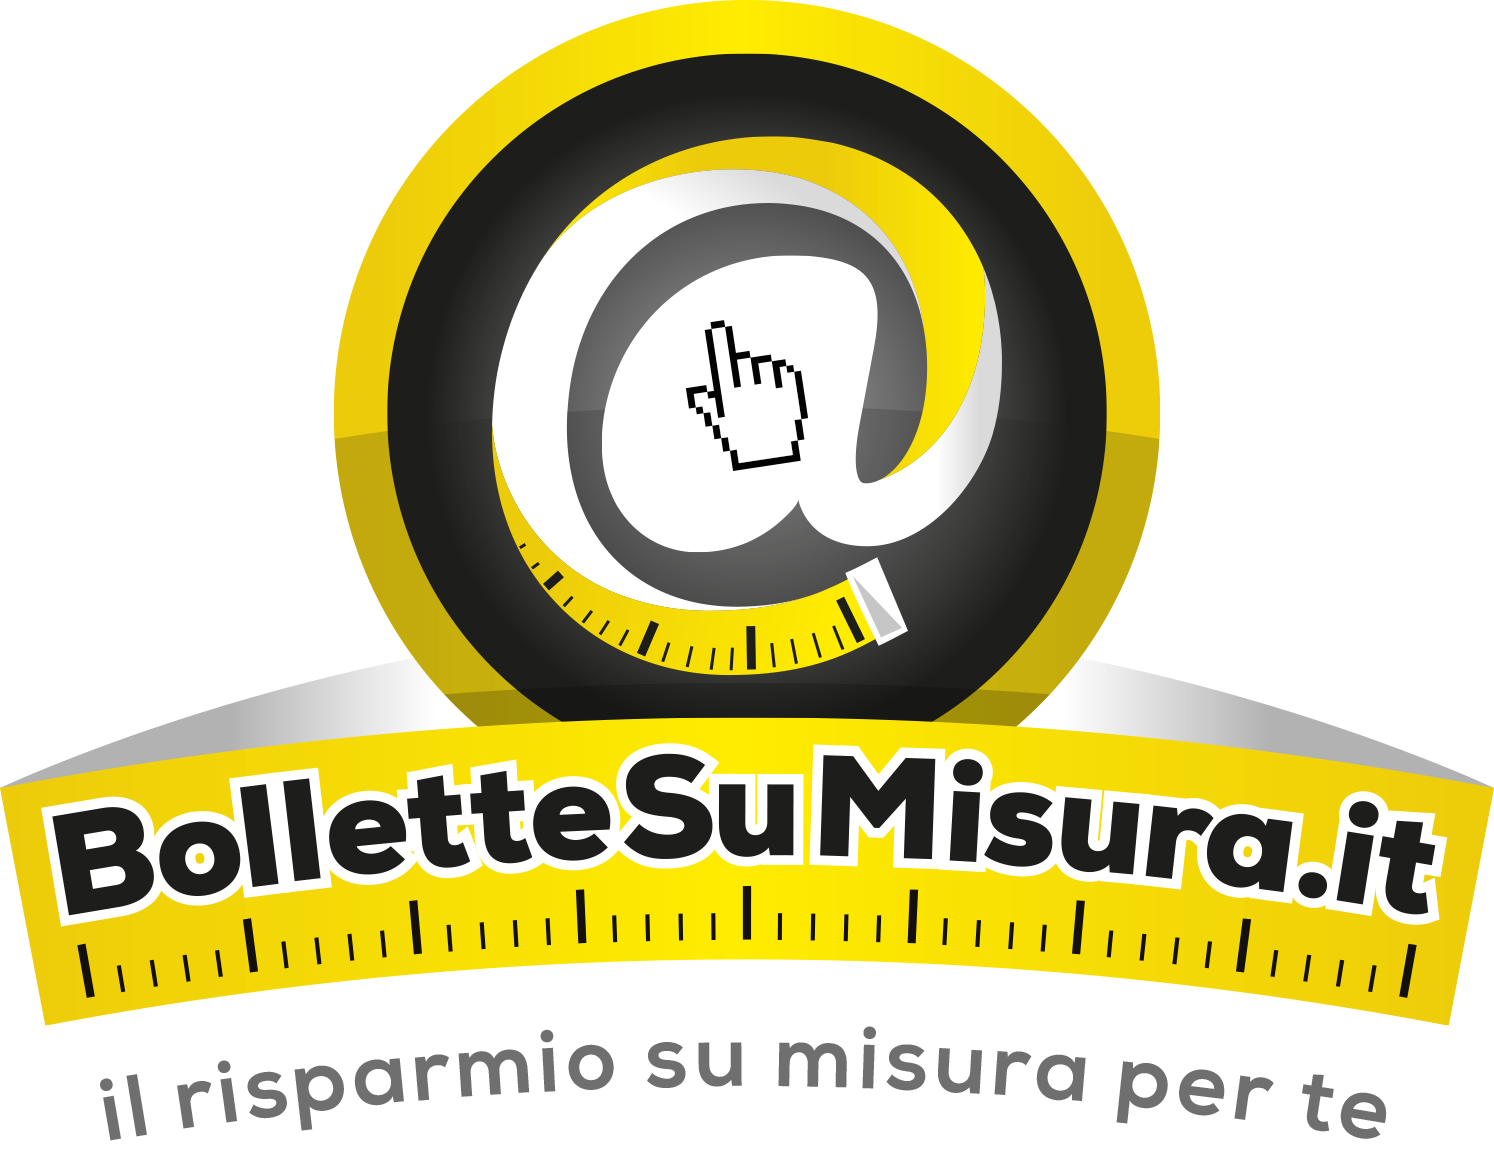 LOGO BOLLETTE SU MISURA.it